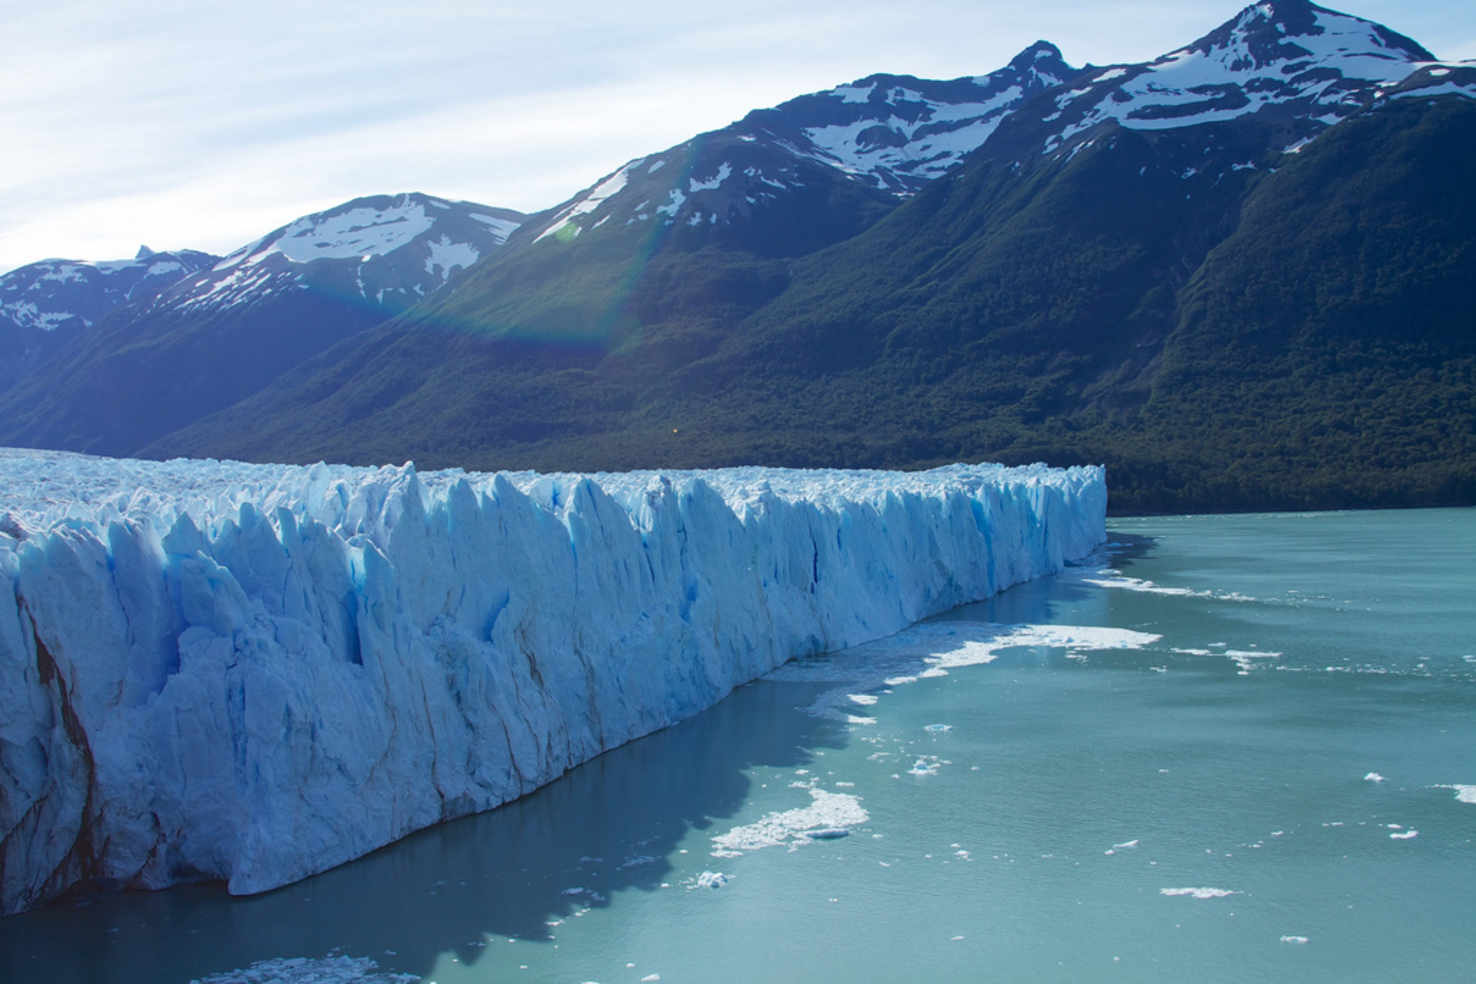 Large icebergs and glaciers at el calafate argentina  2